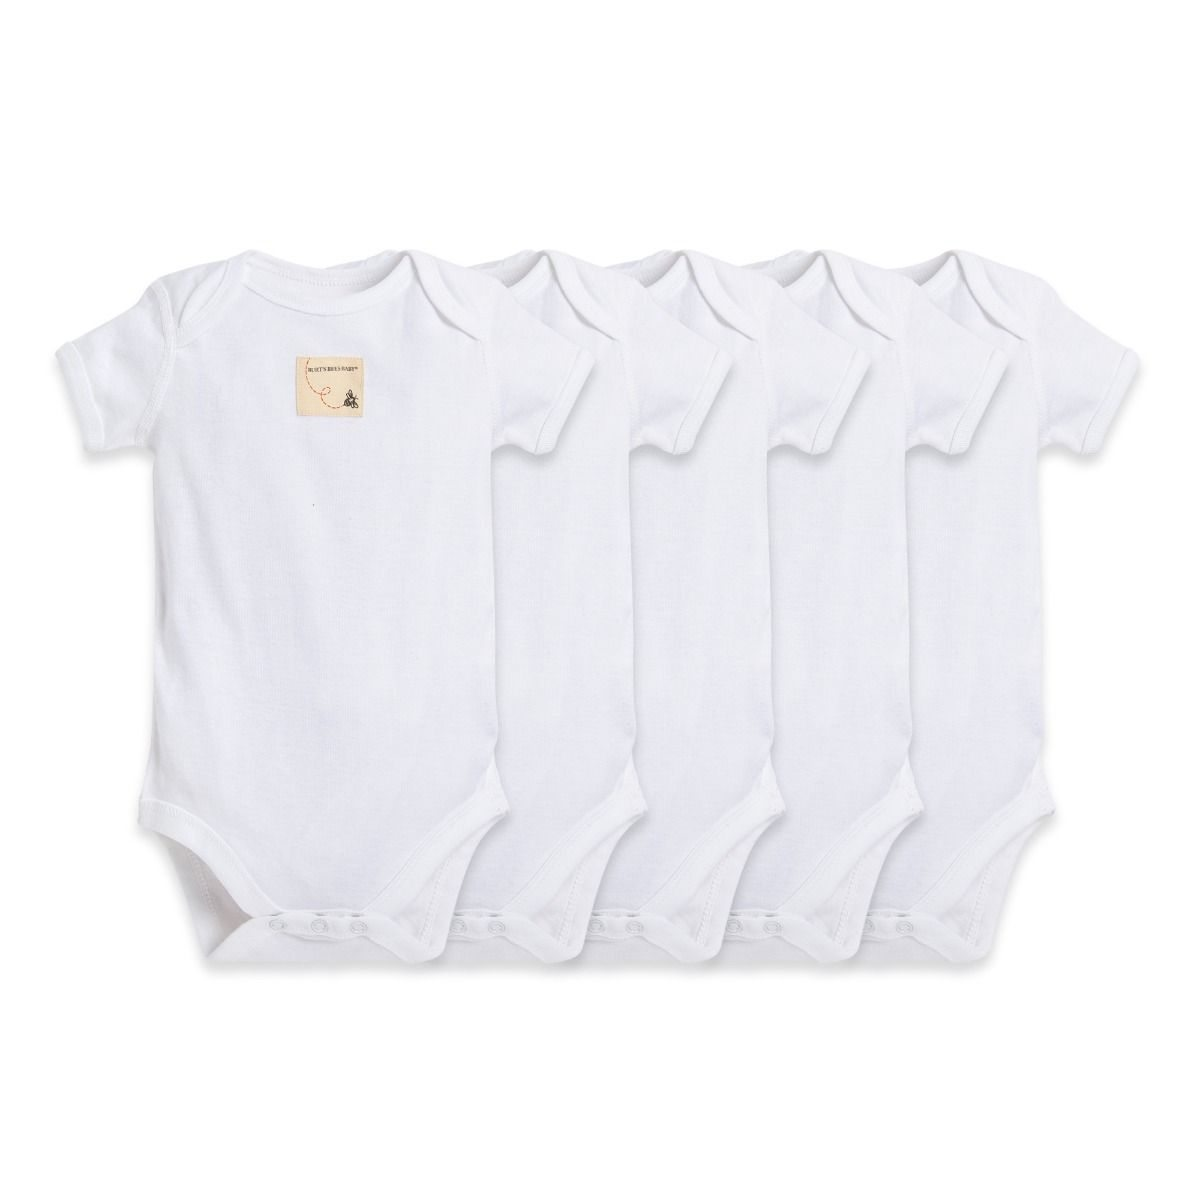 Bee Essentials Organic Short Sleeve Baby Bodysuit 5 Pack